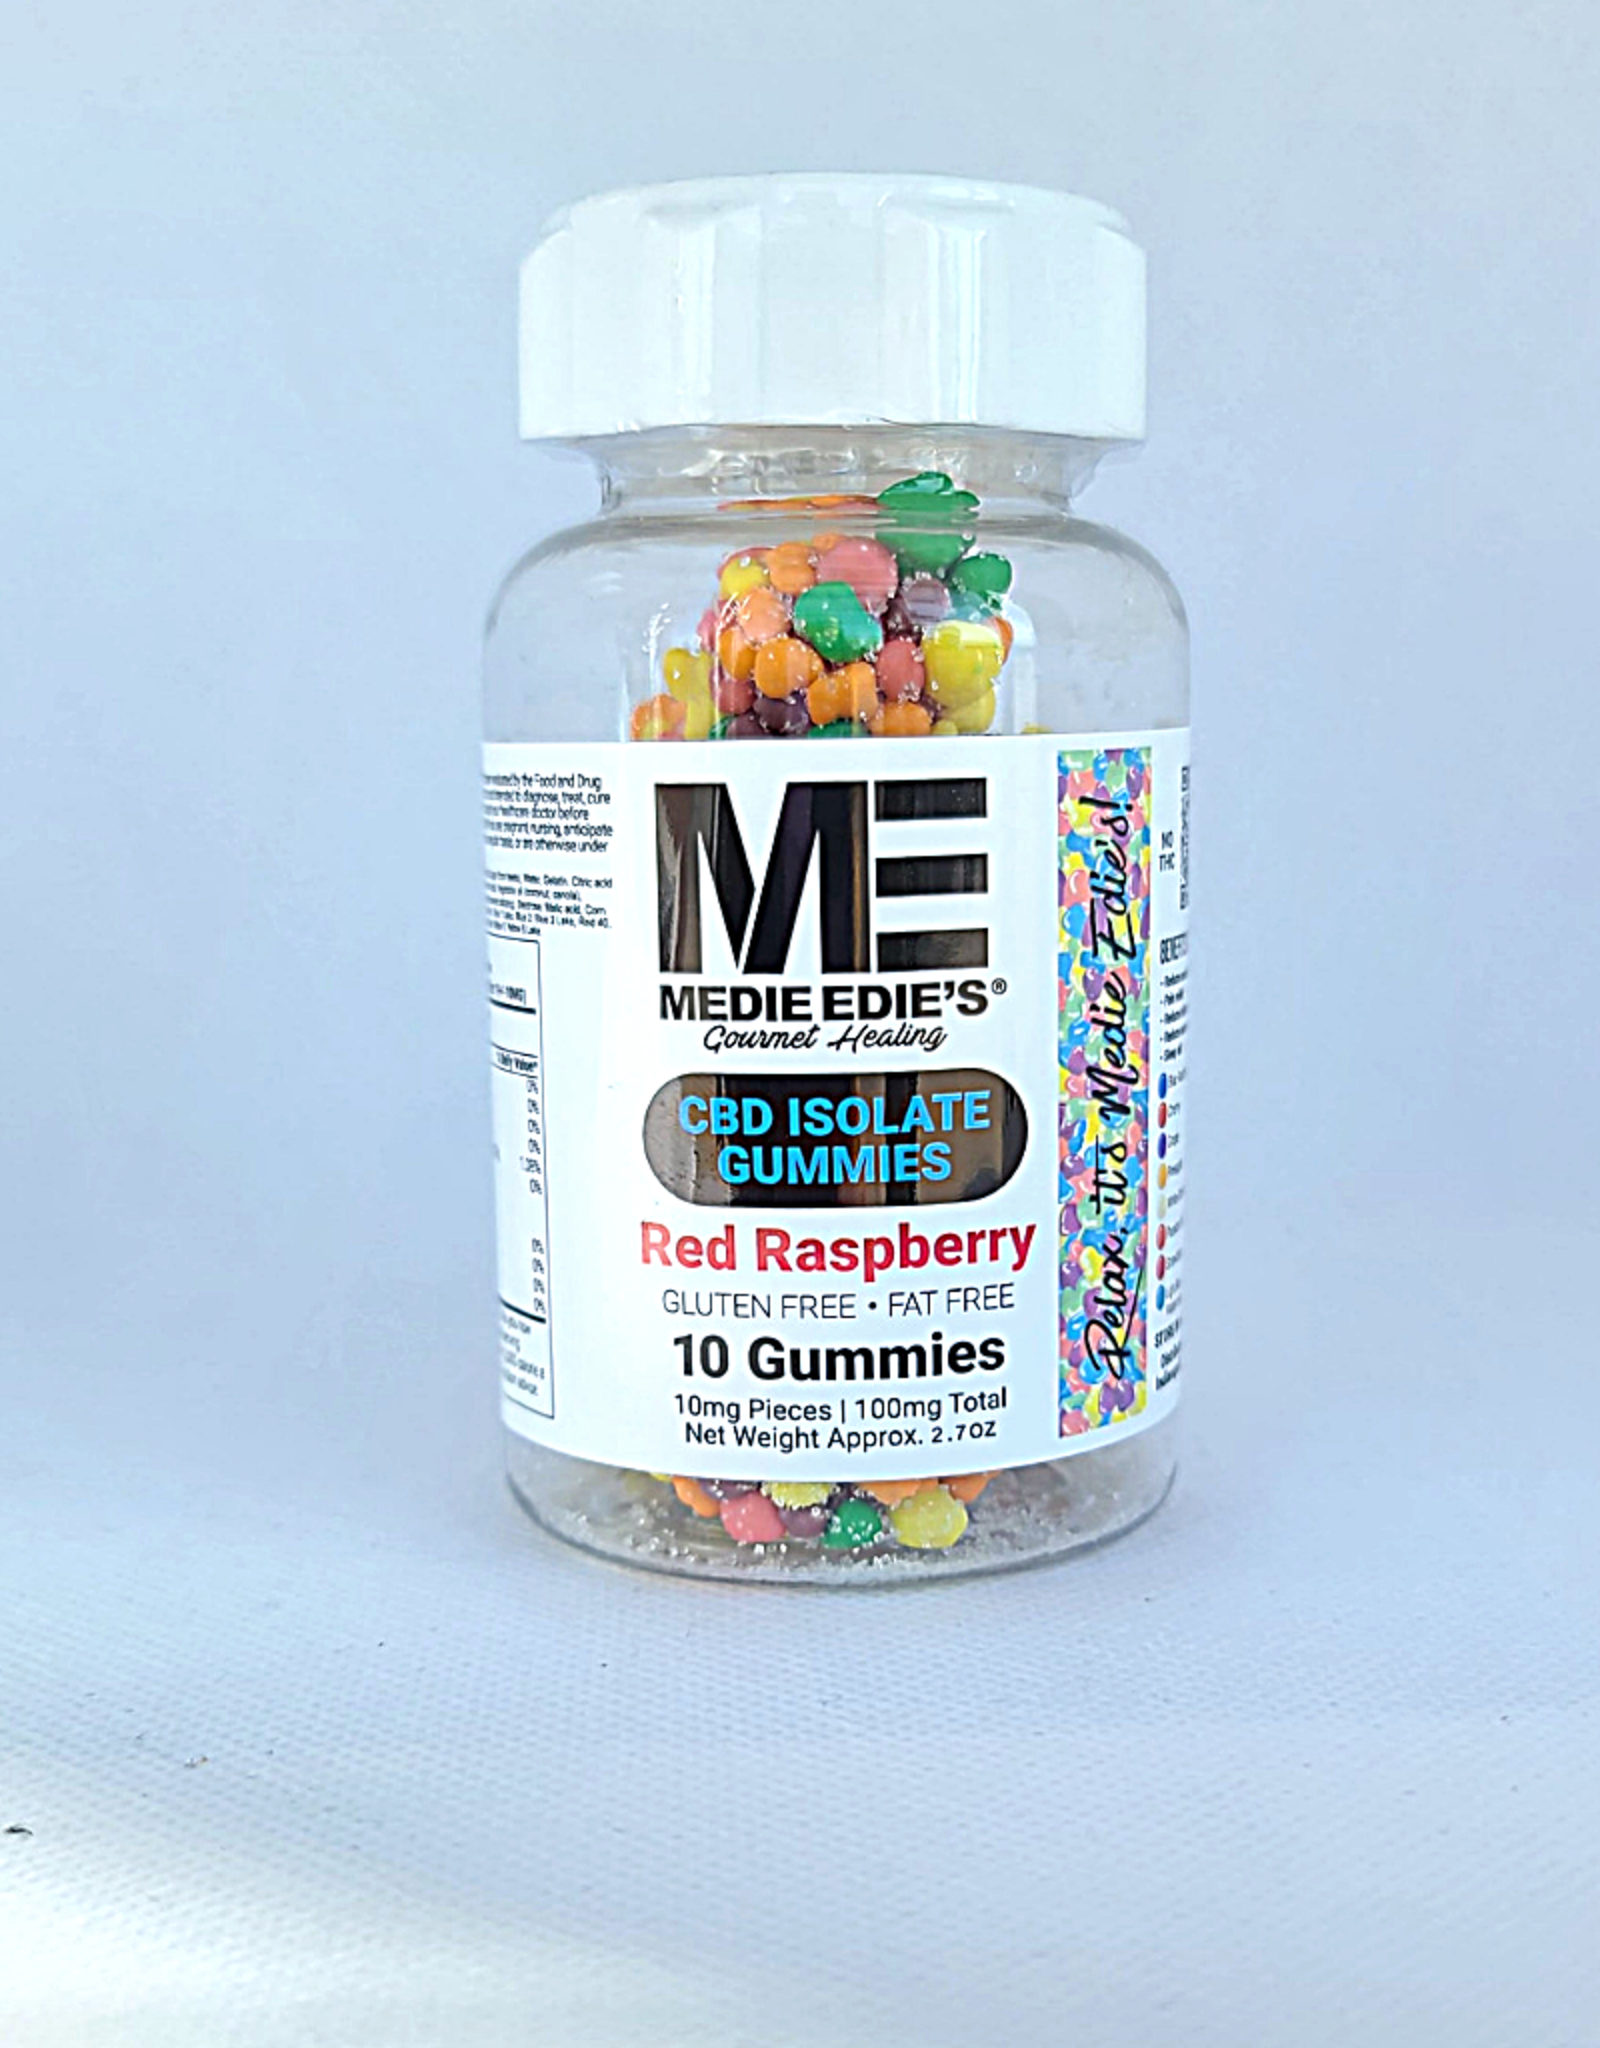 Medie Edie's Pebbled Red Raspberry CBD Gummies - 10ct/10mg/100mg